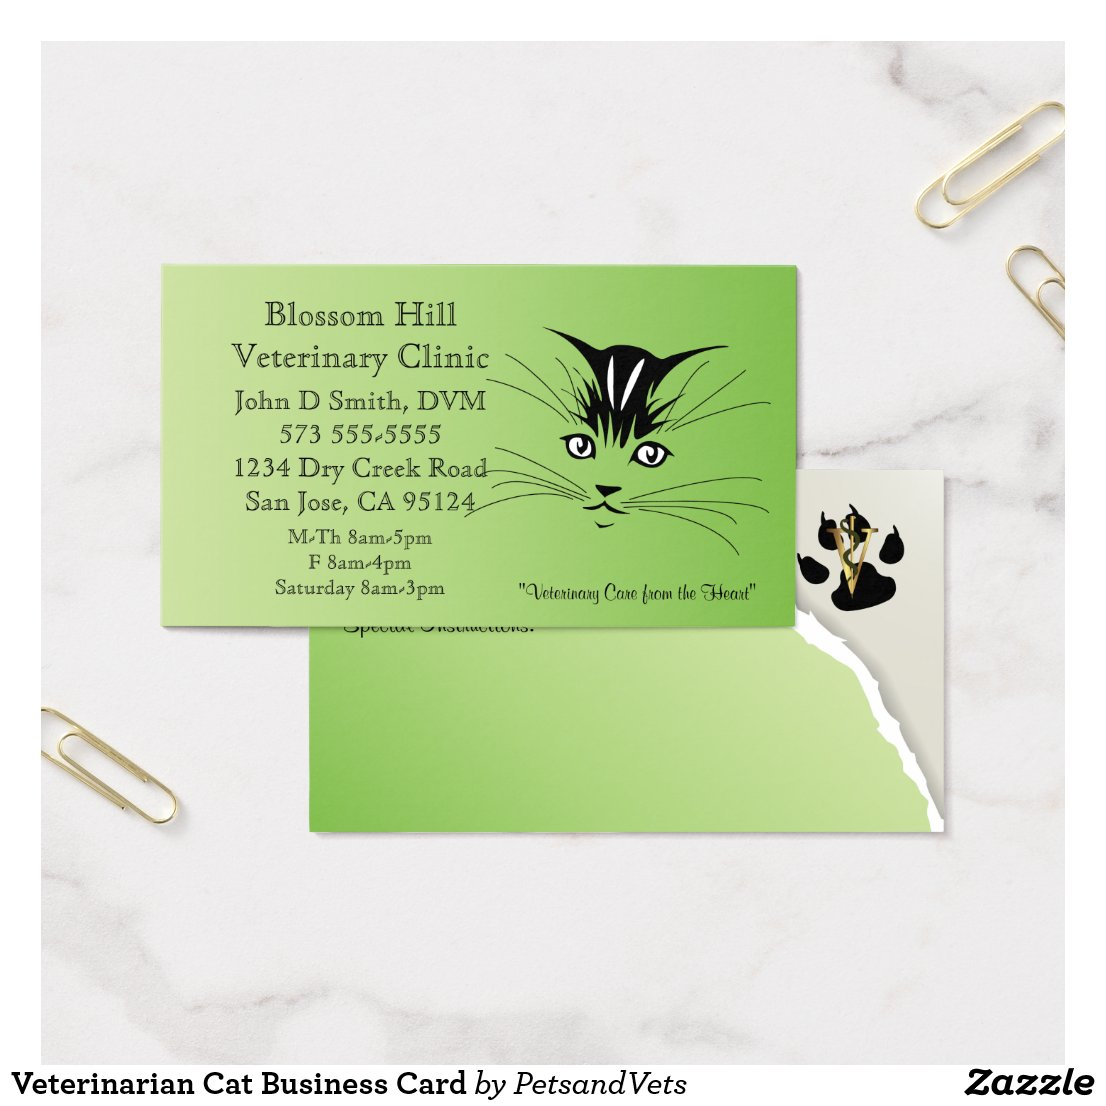 Veterinarian Cat Business Card